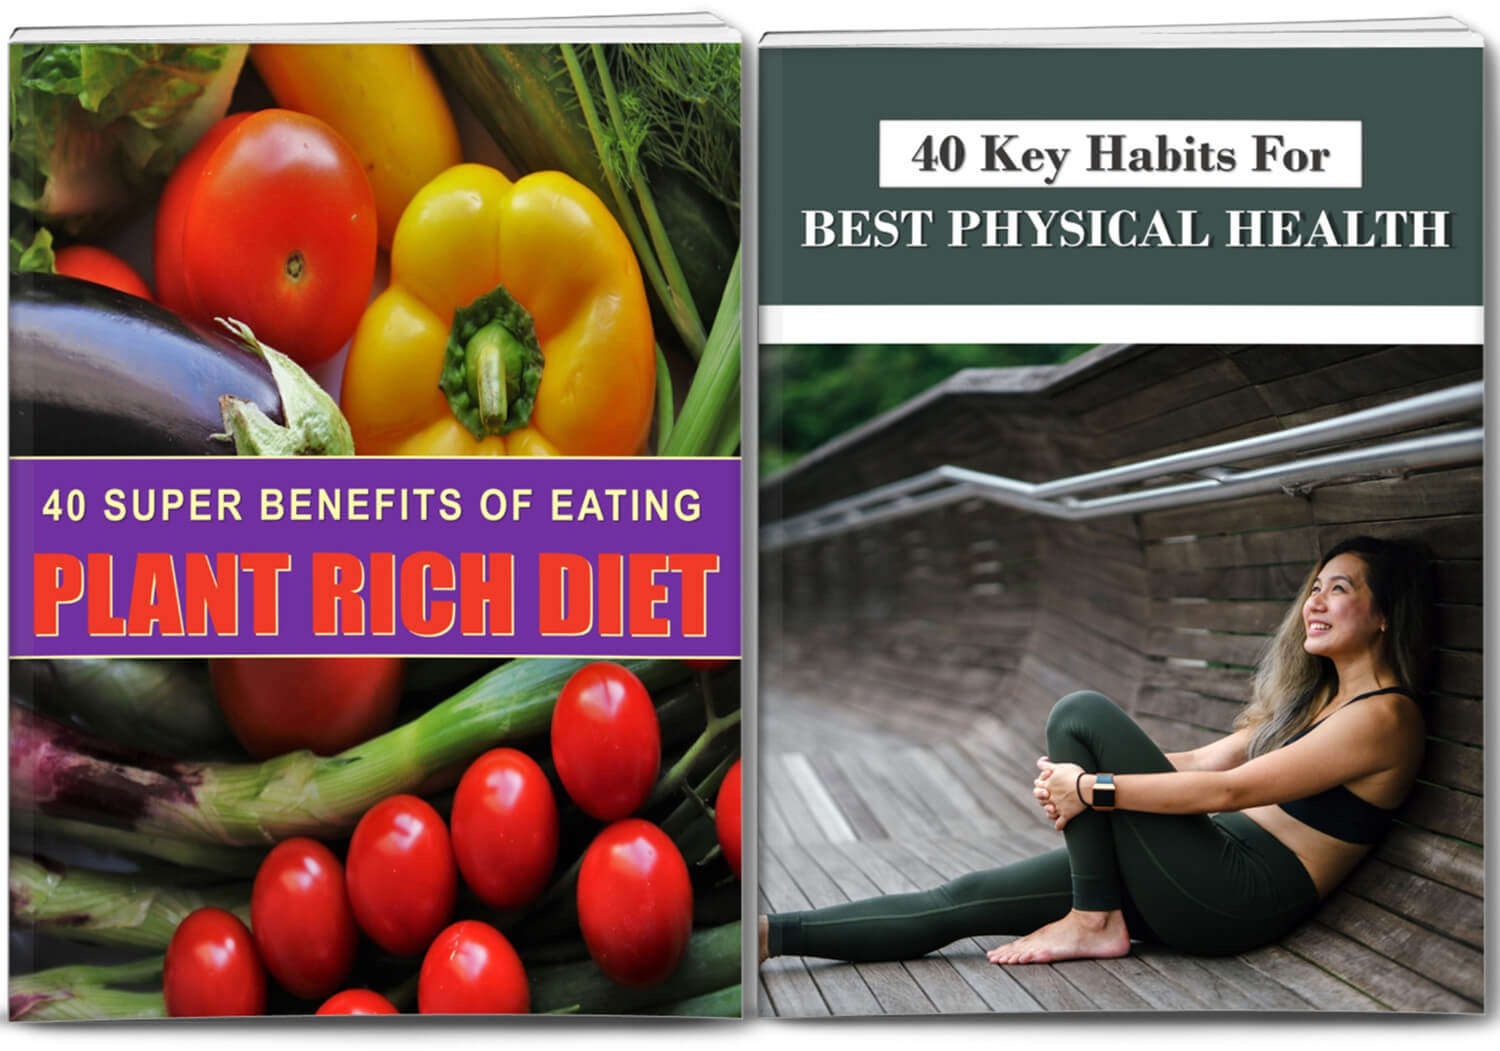 HIGHEST QUALITY Low Calorie Diet Report, Low Fat Diet Report and 10 Diet Articles with Full PLR Rights